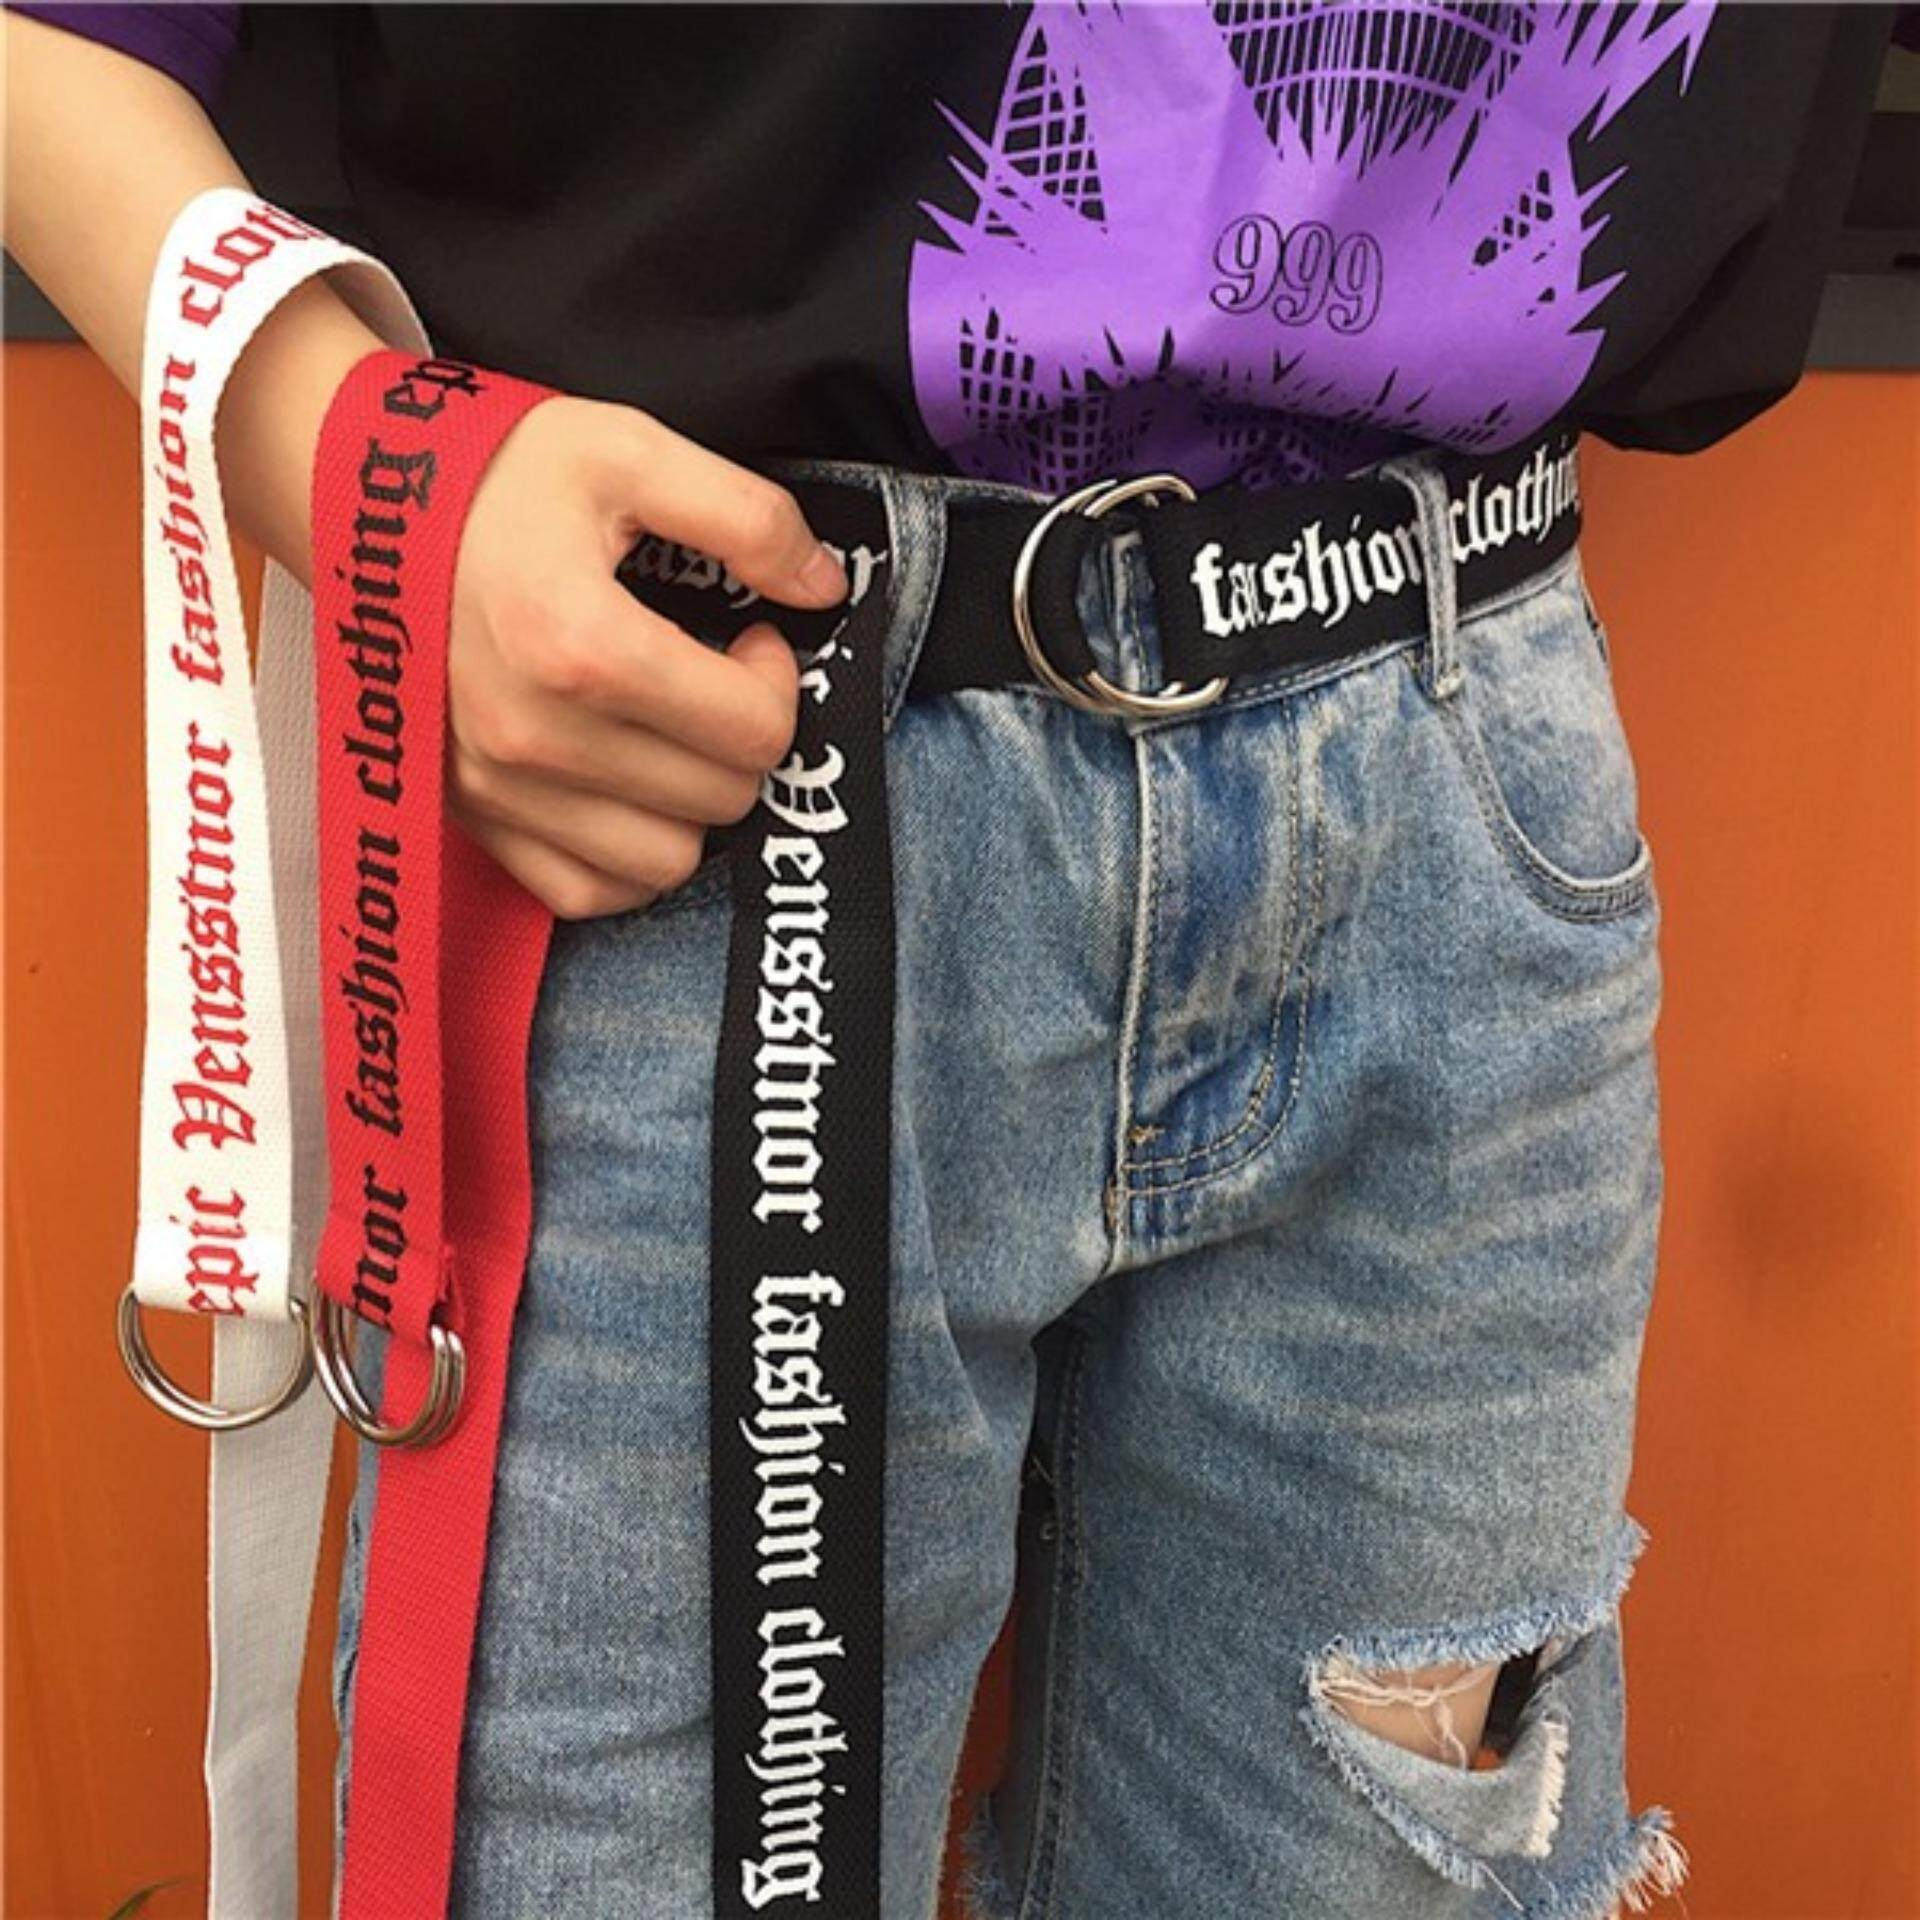 130cm Fashion Neutral Nylon Canvas Belt Printing Thai D Ring Double Buckle Belt